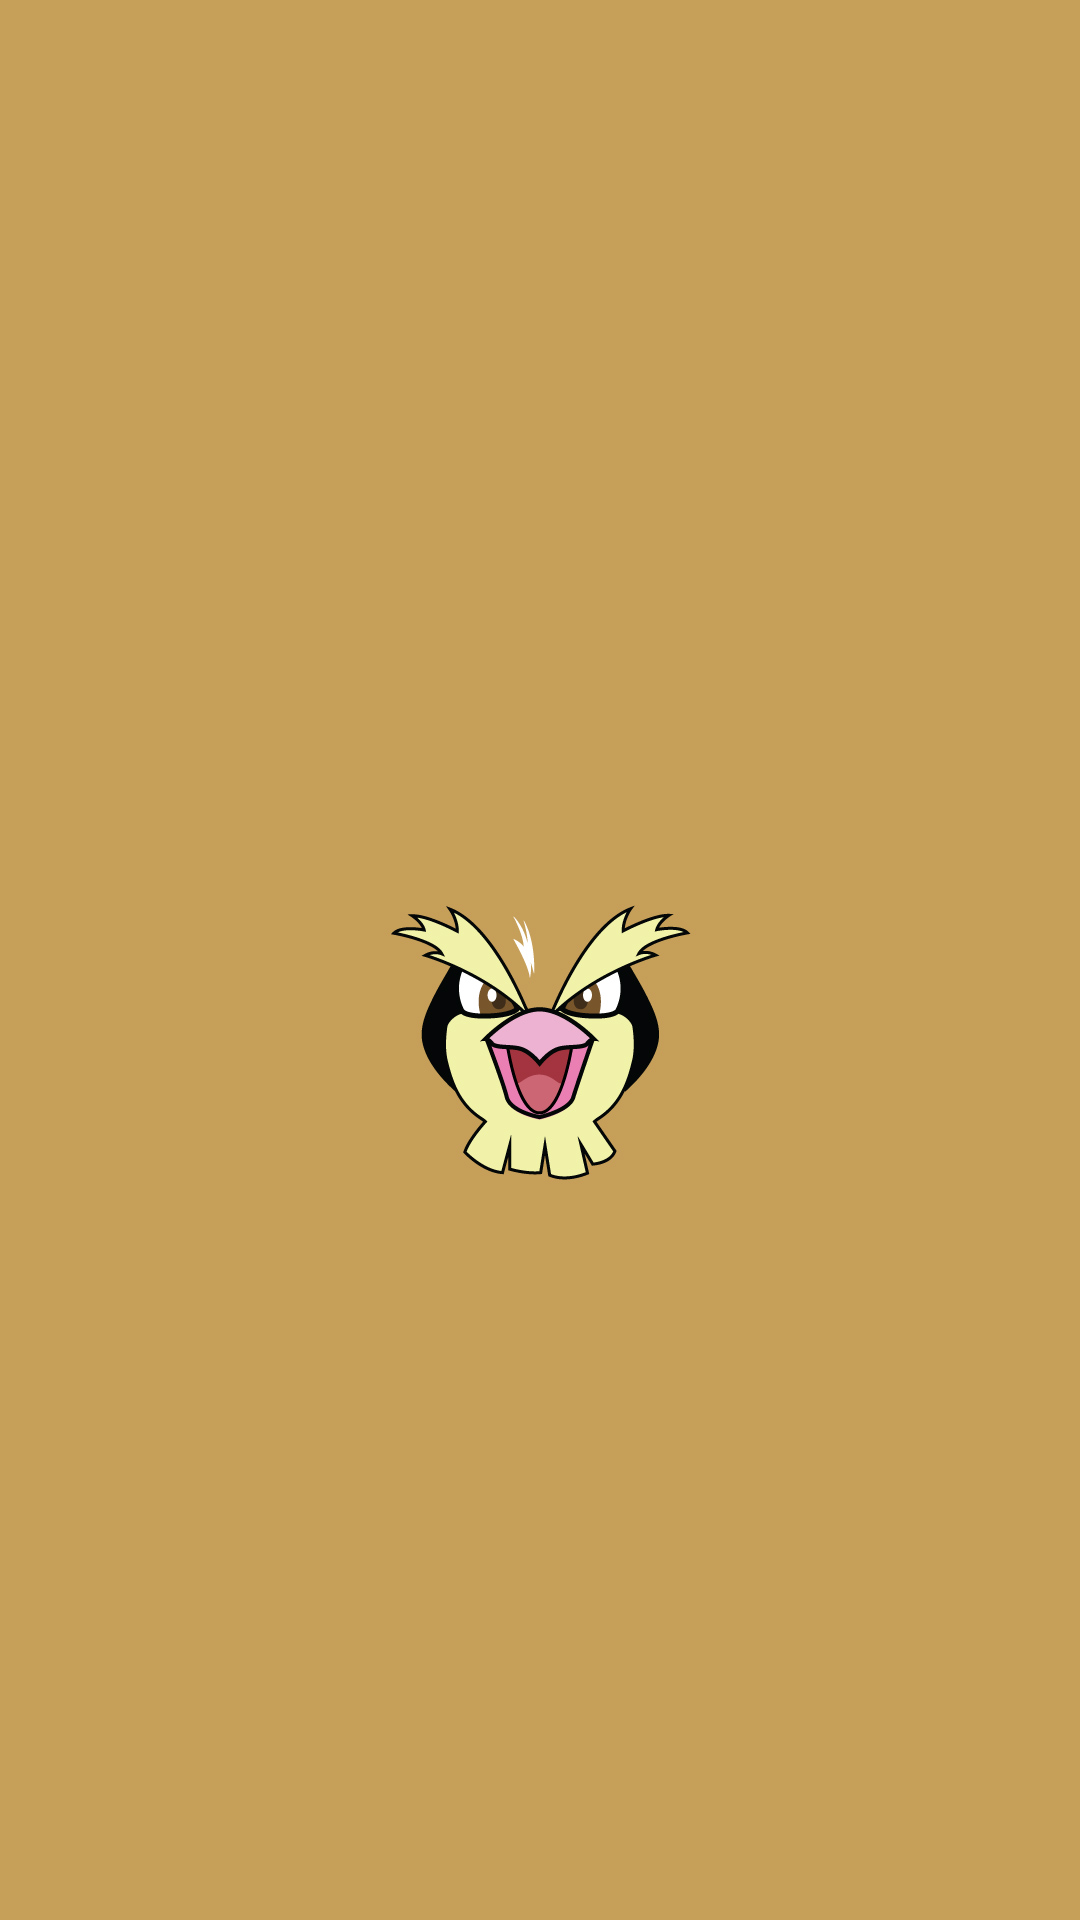 pidgey-pokemon-go-character-android-wallpaper